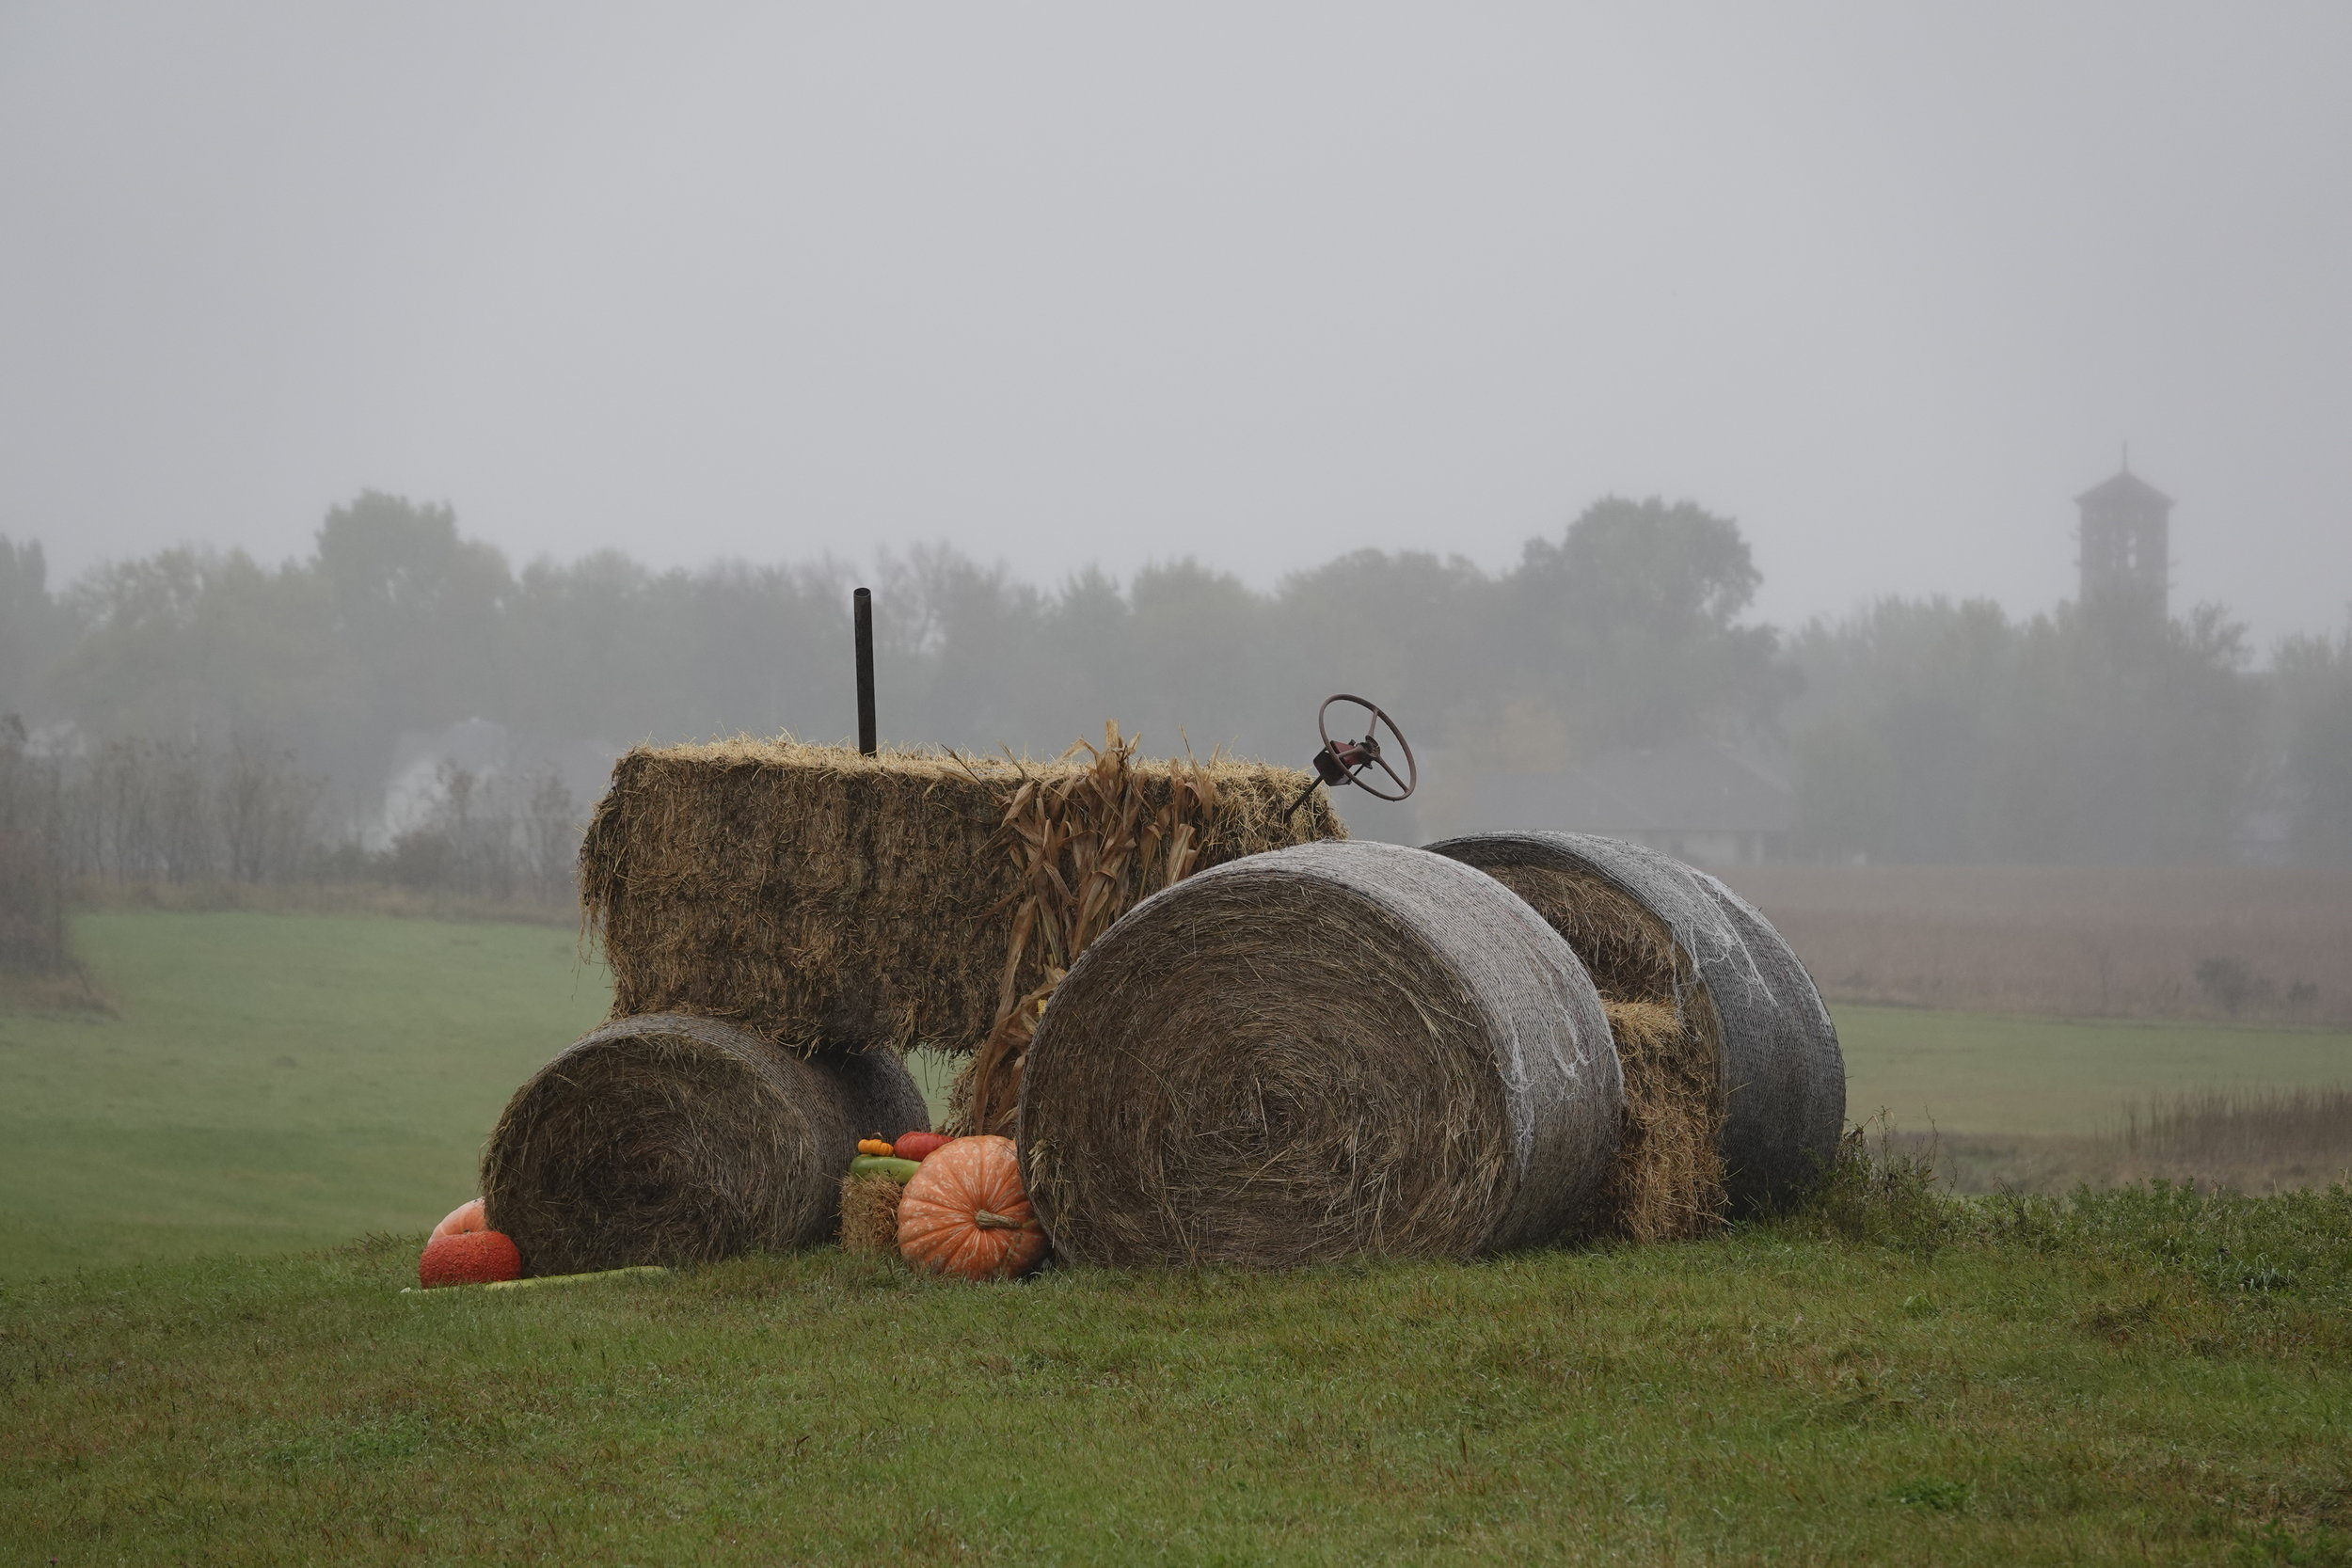 I saw this farm tractor between Meire Grove and Greenwald in Minnesota.